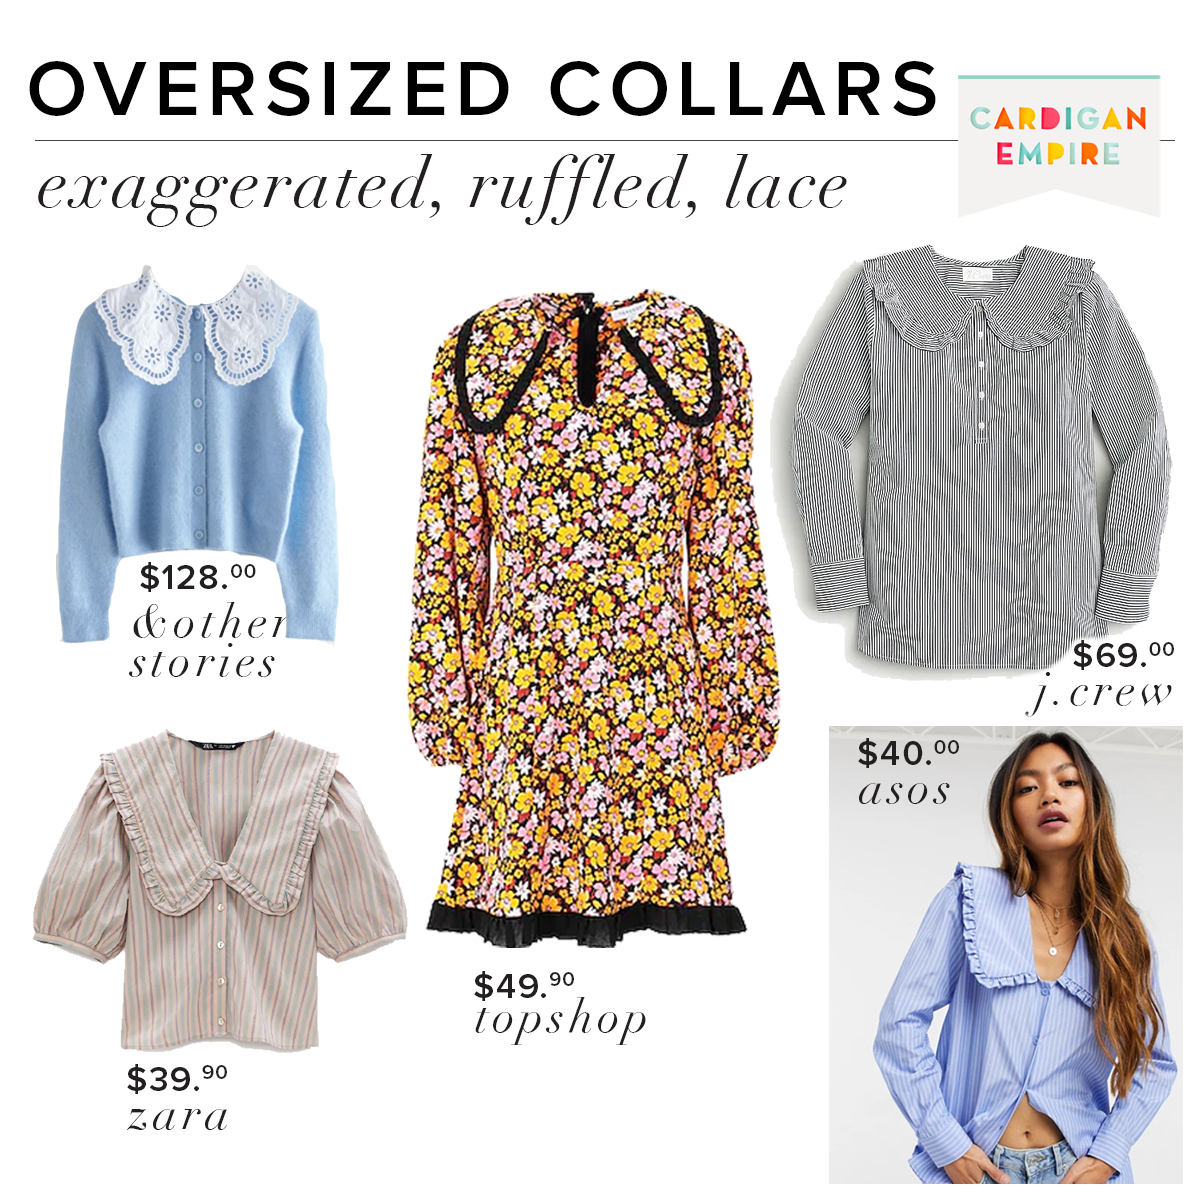 Spring 2021 Trend Oversized Collars: Exaggerated, Ruffled, Lace Collars